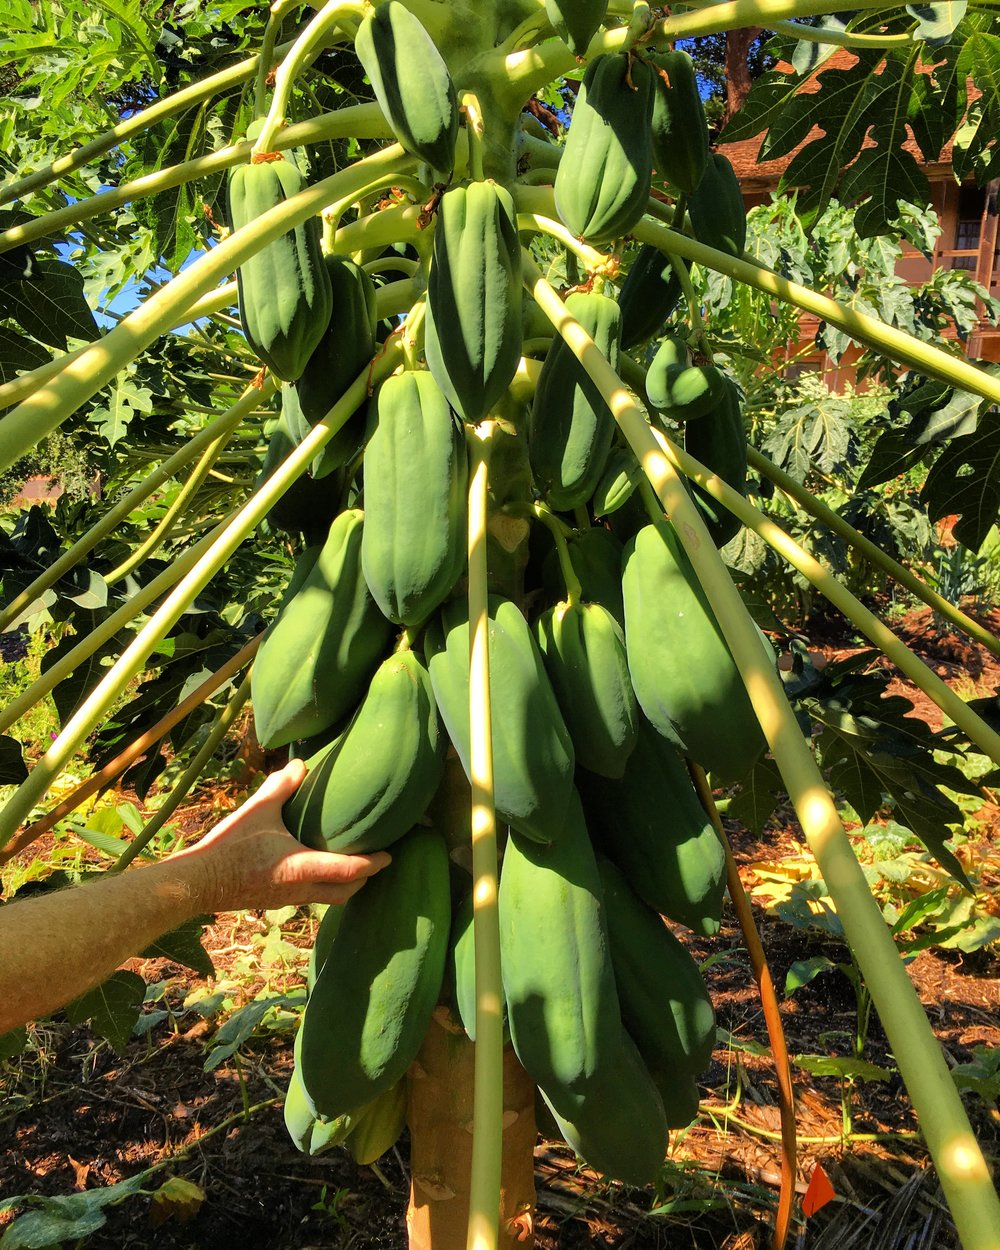 Giant Papayas!